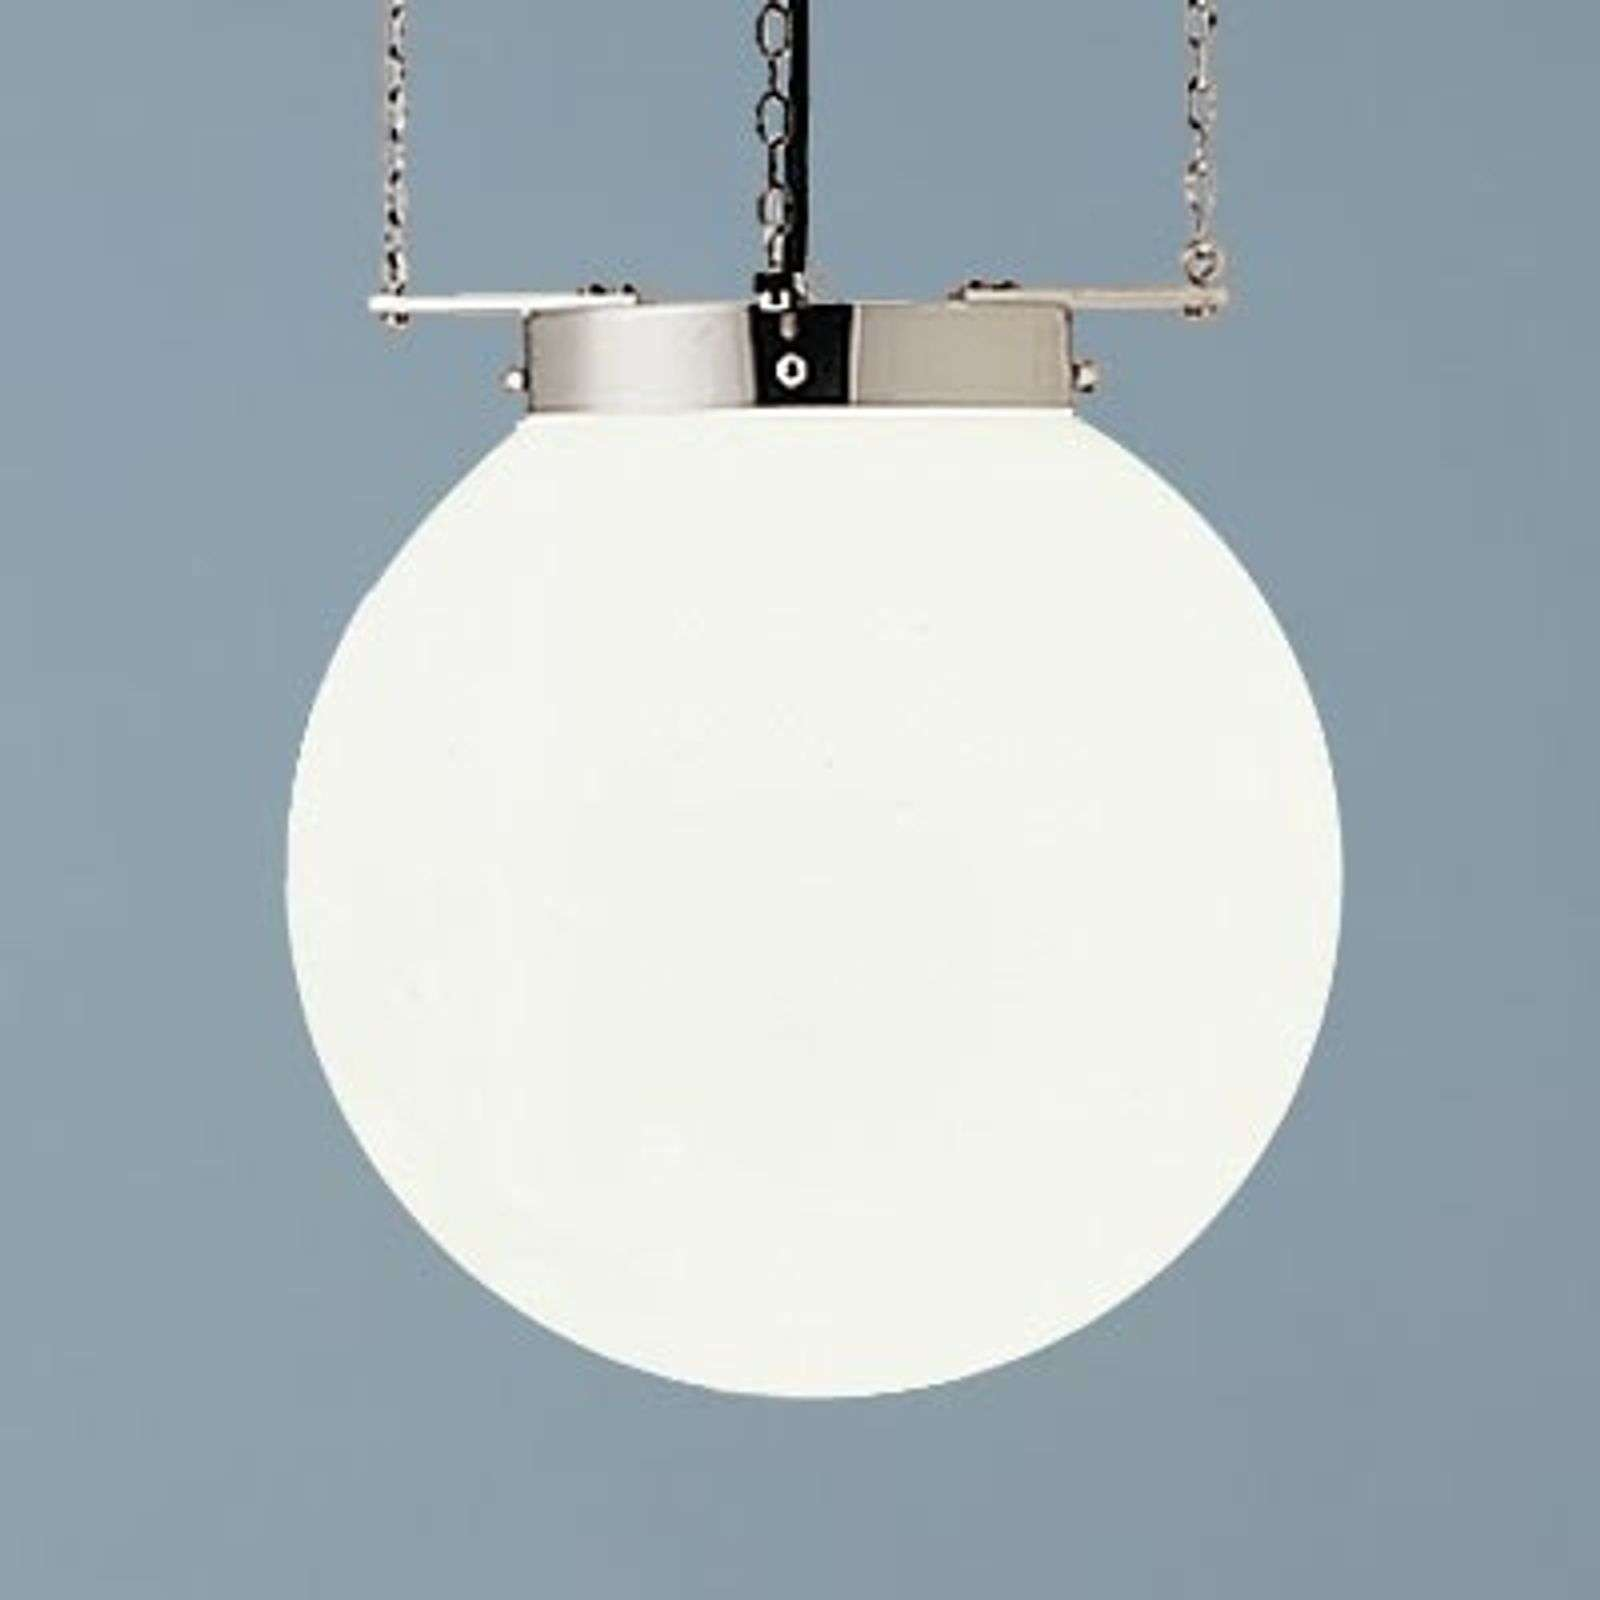 Suspension nickel style Bauhaus 35 cm